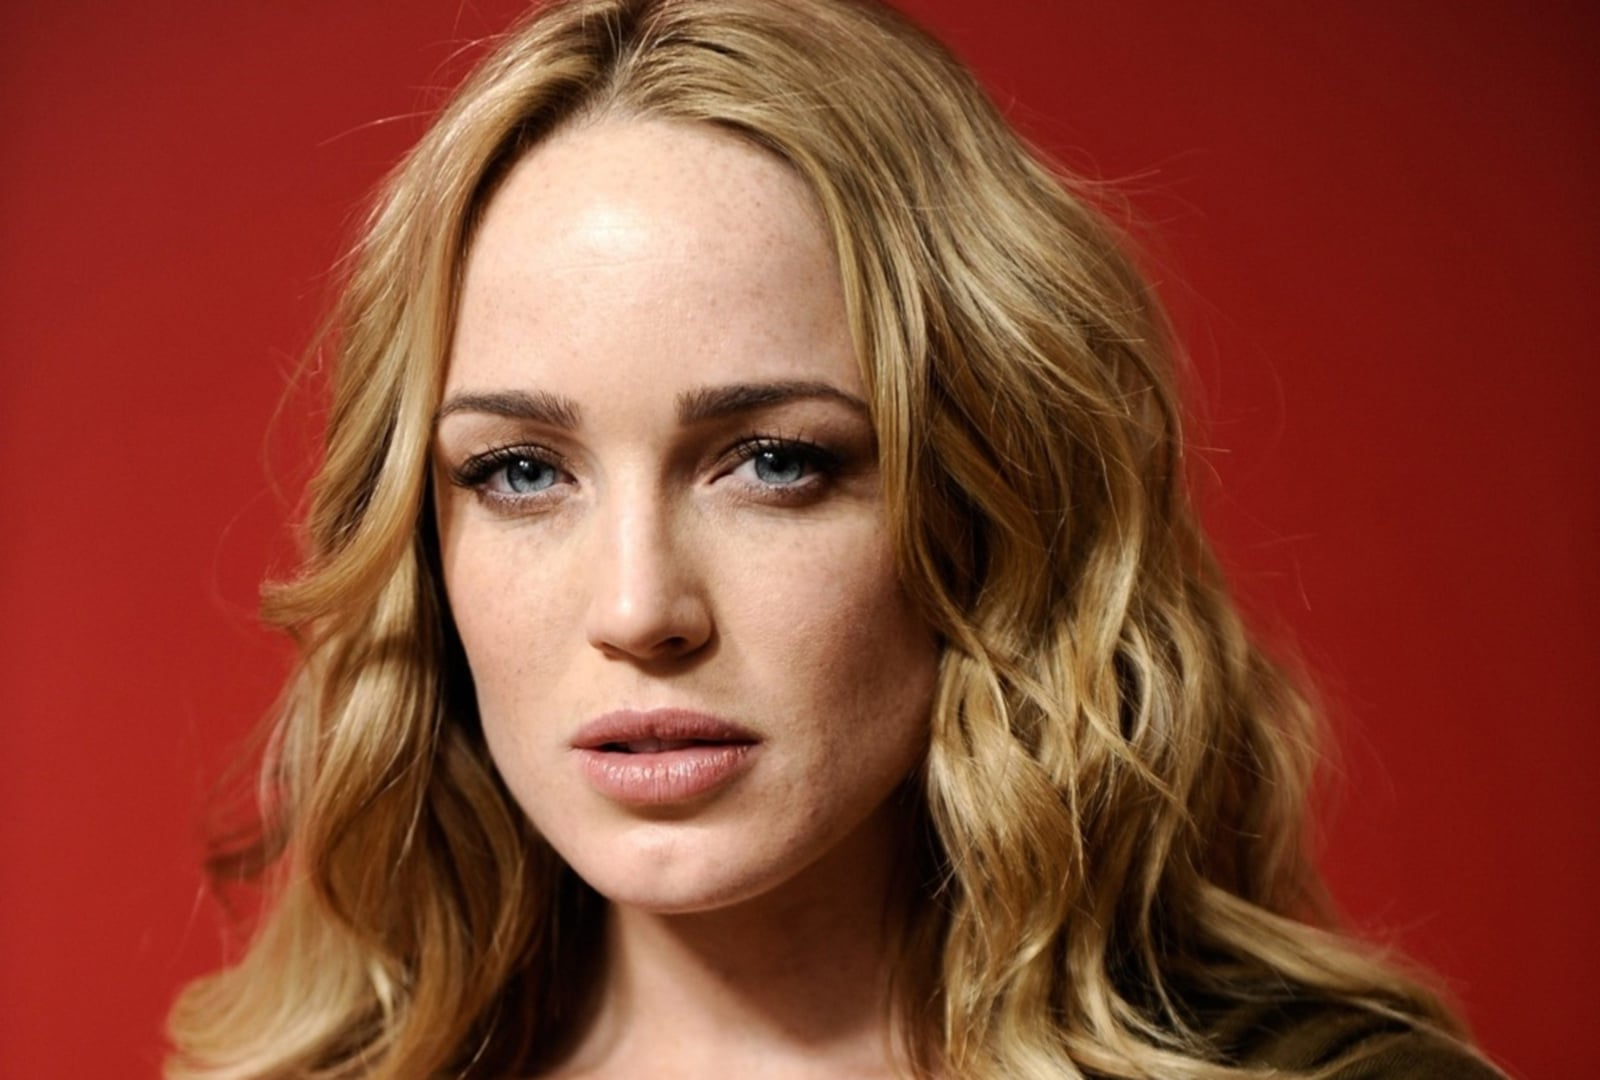 Caity Lotz HQ wallpapers